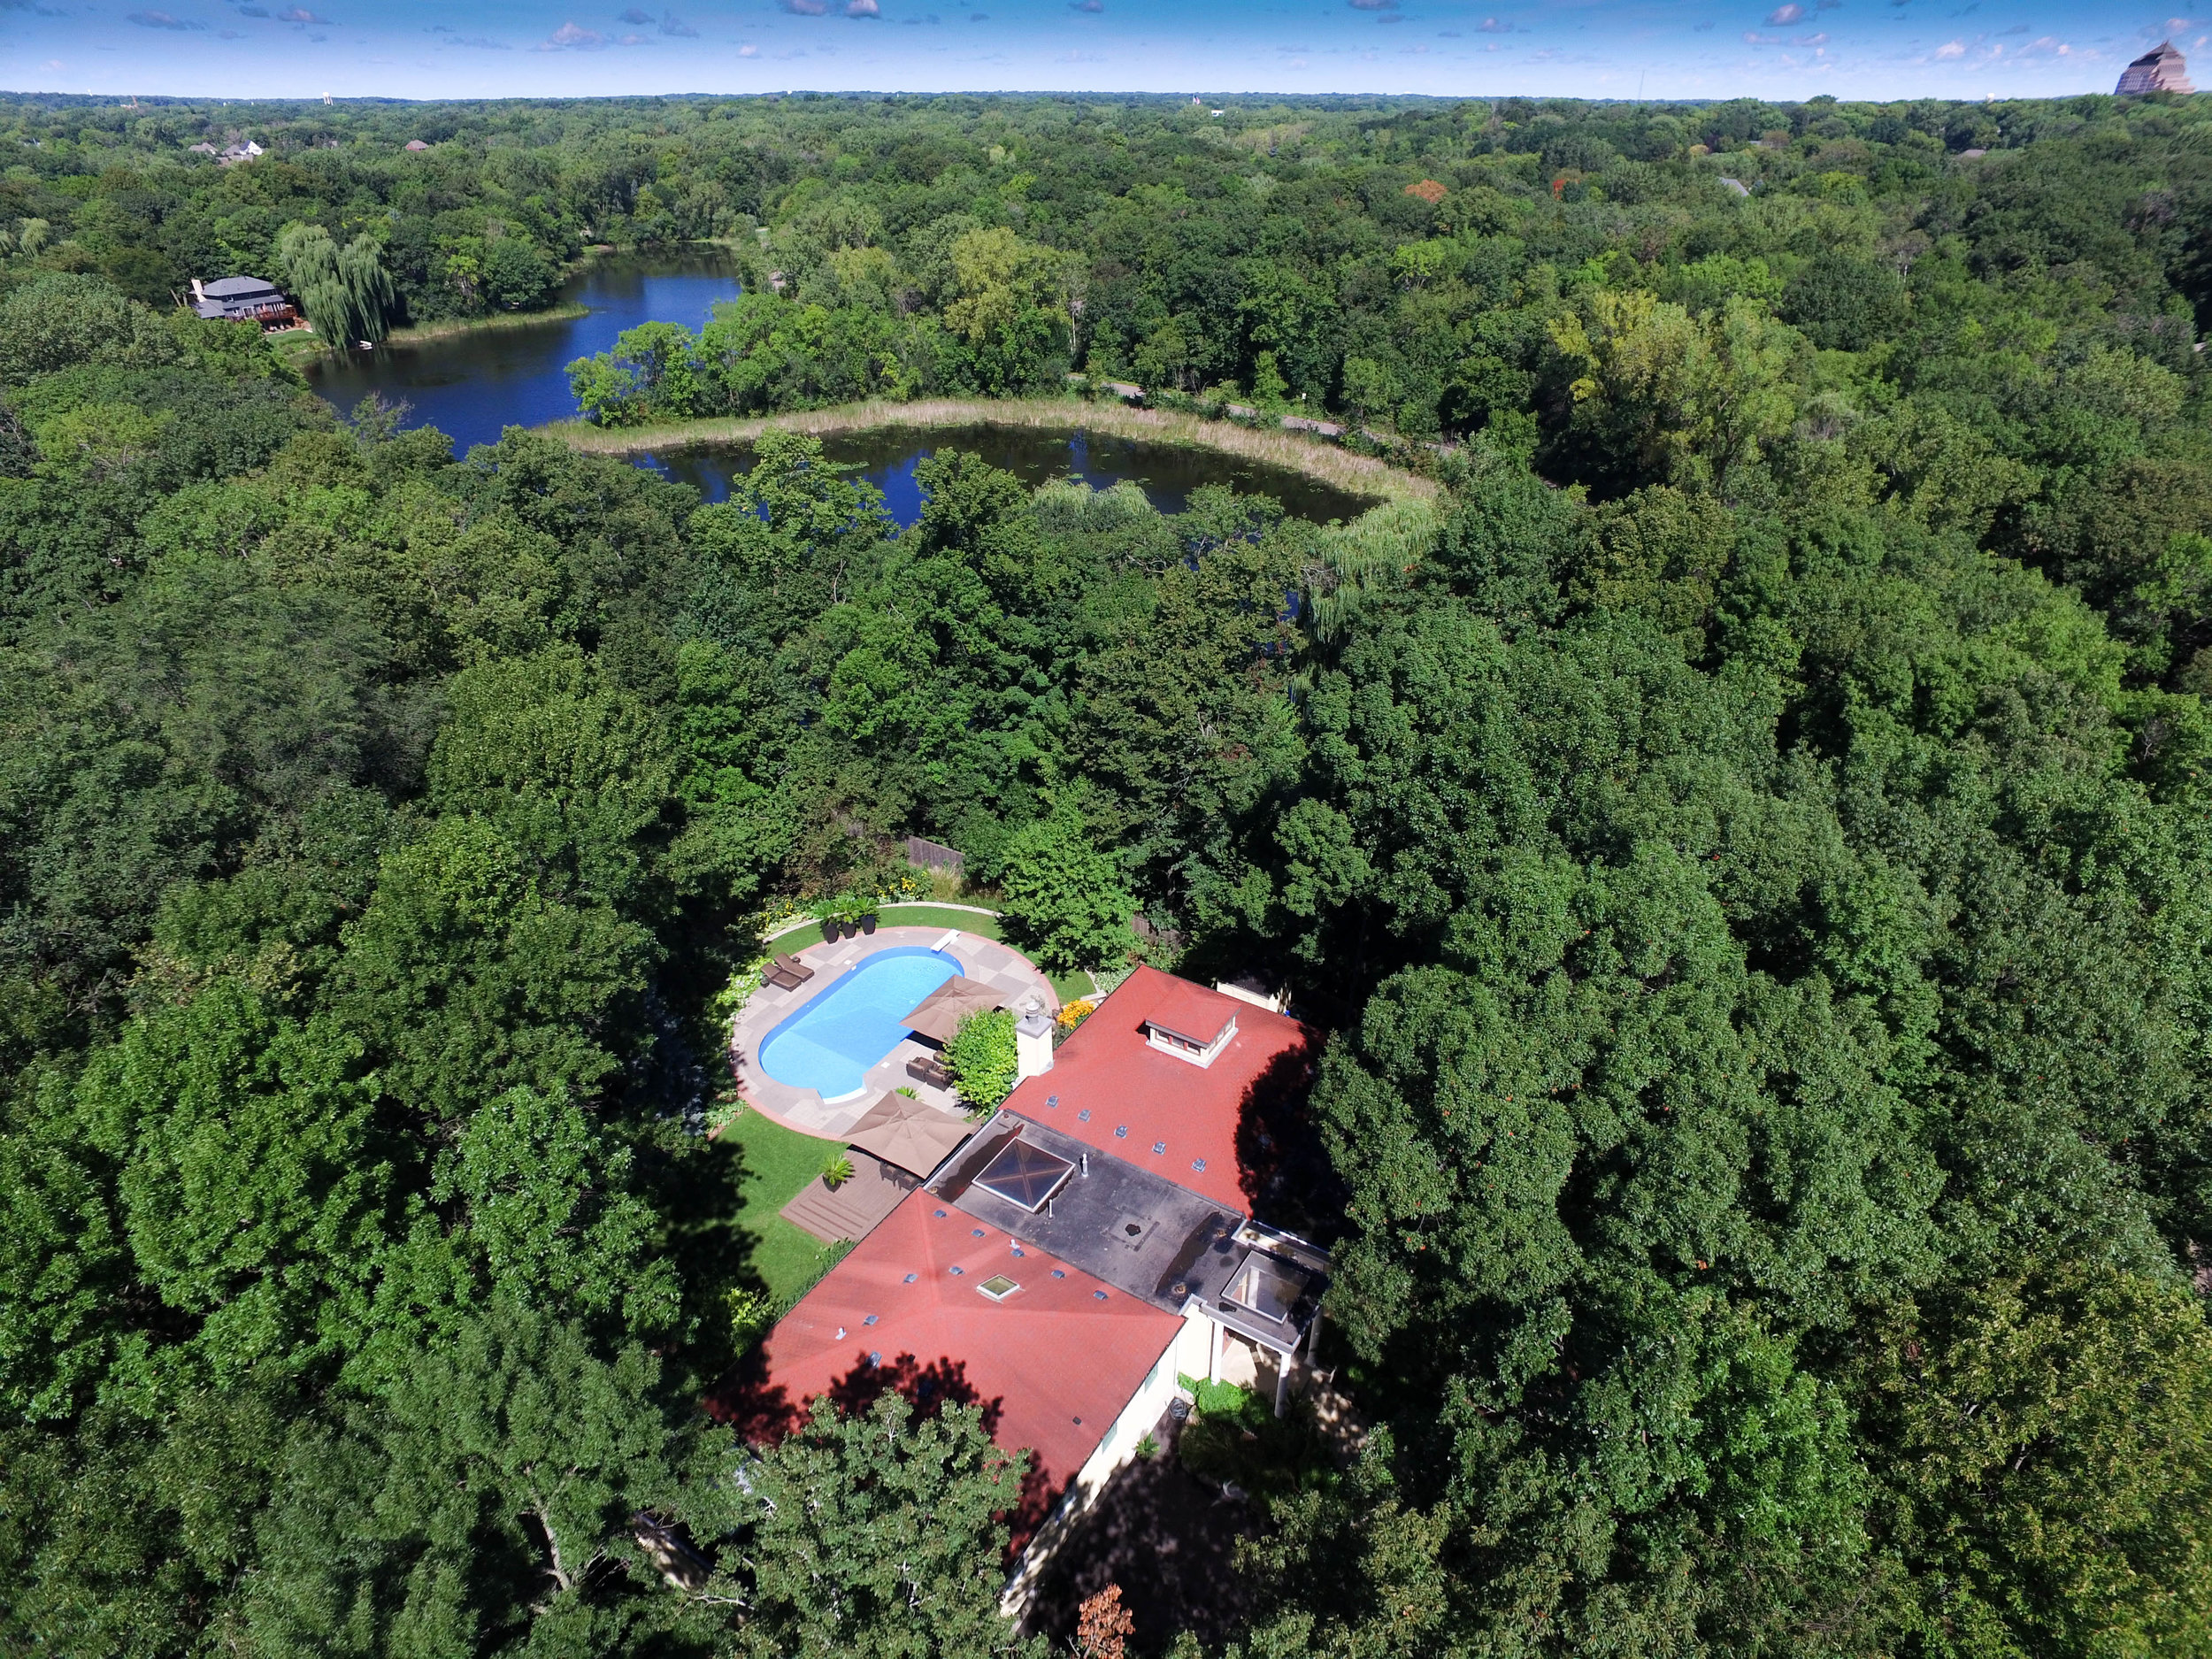 drone real estate pool photography